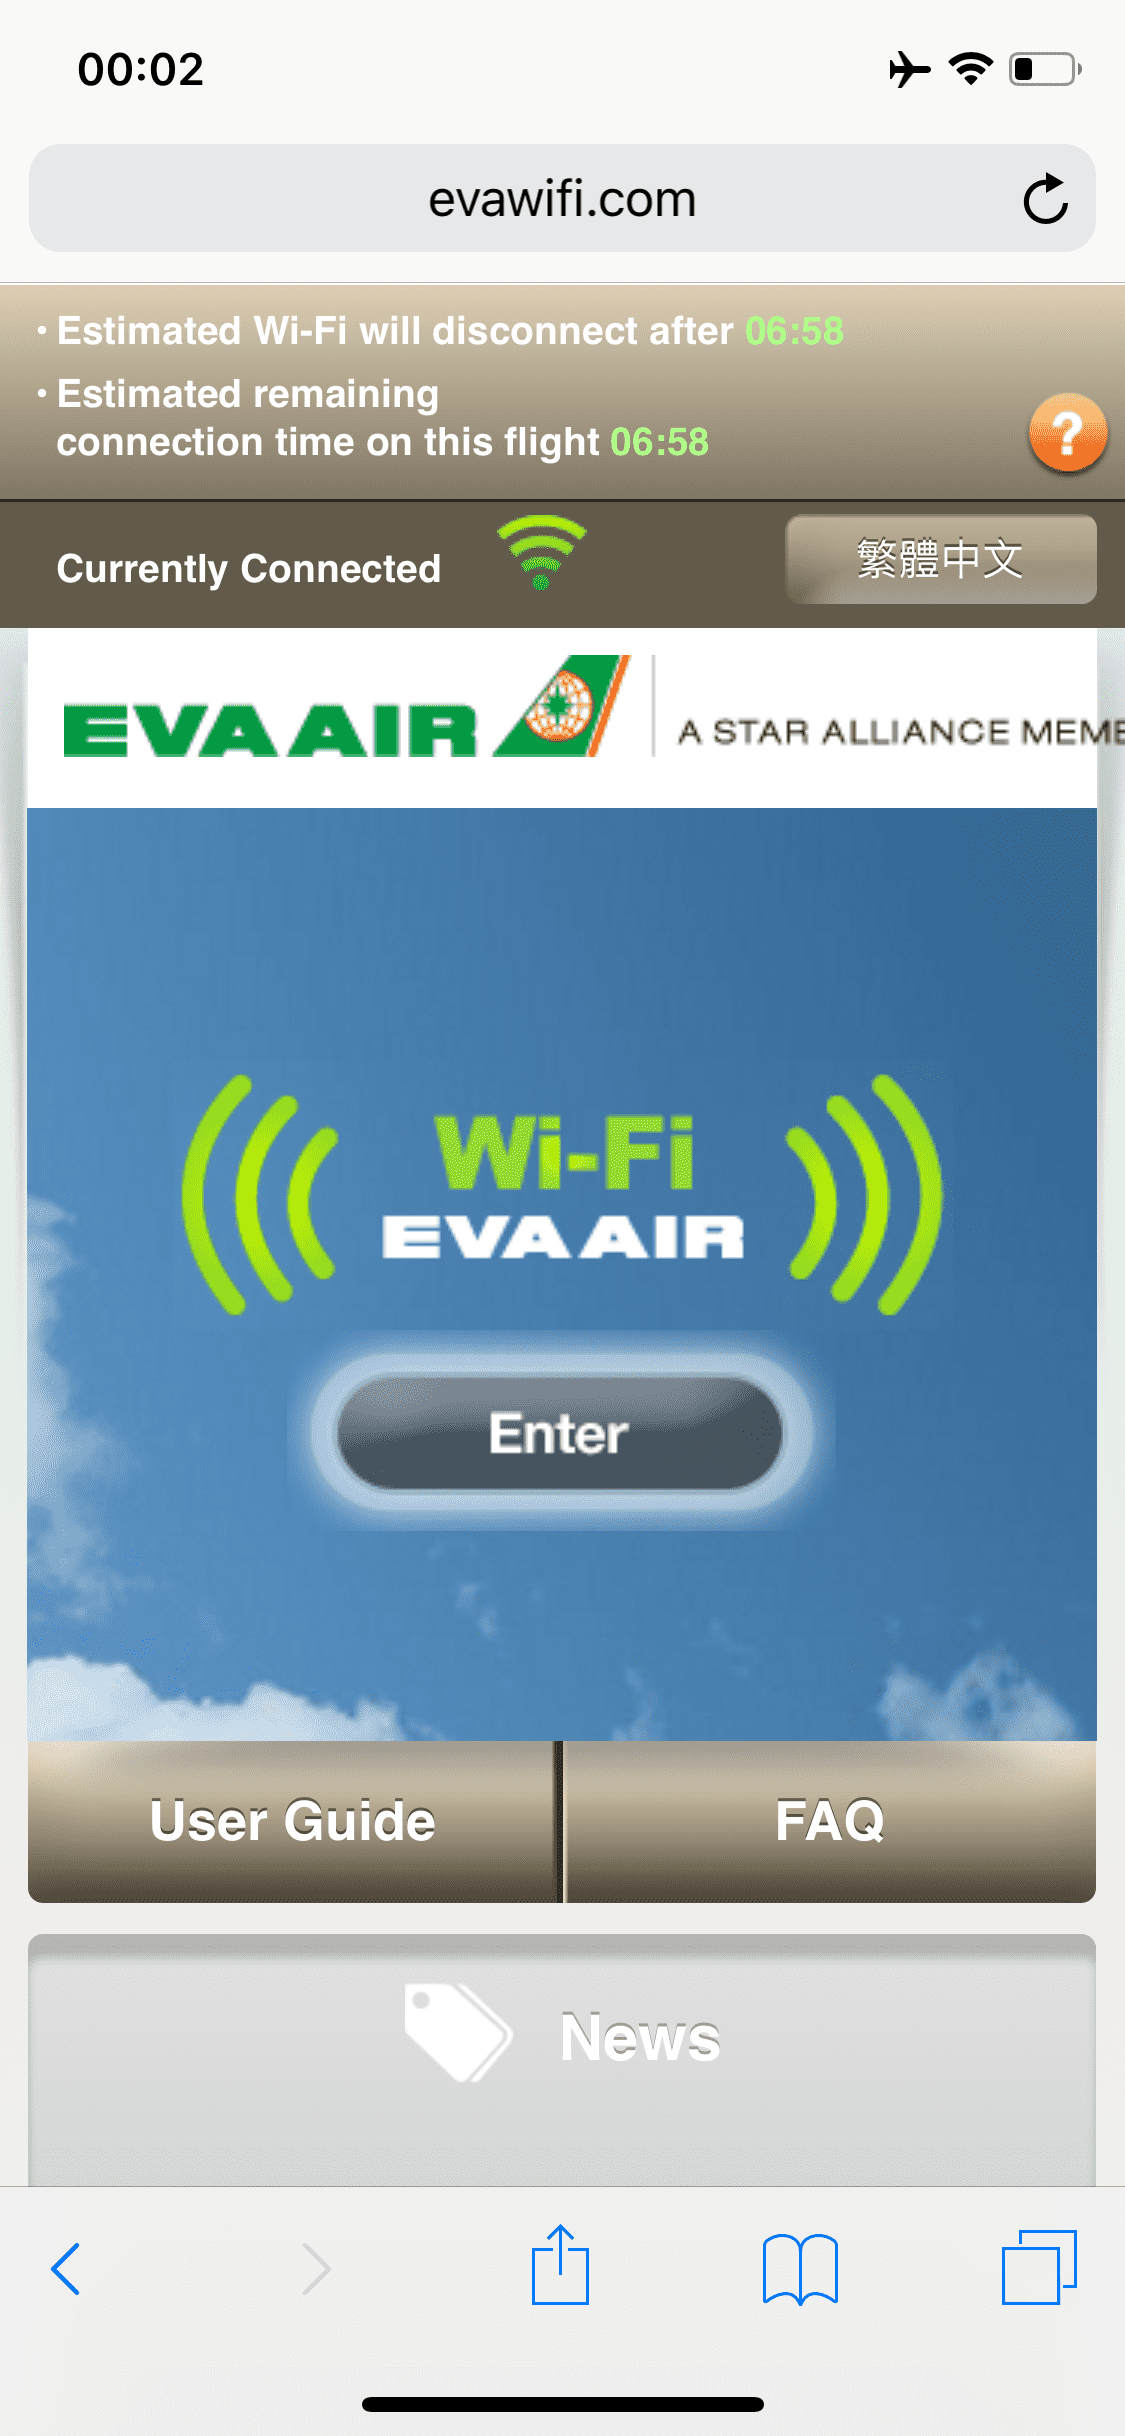 EVA Air Business Class A330-300 WiFi Connect